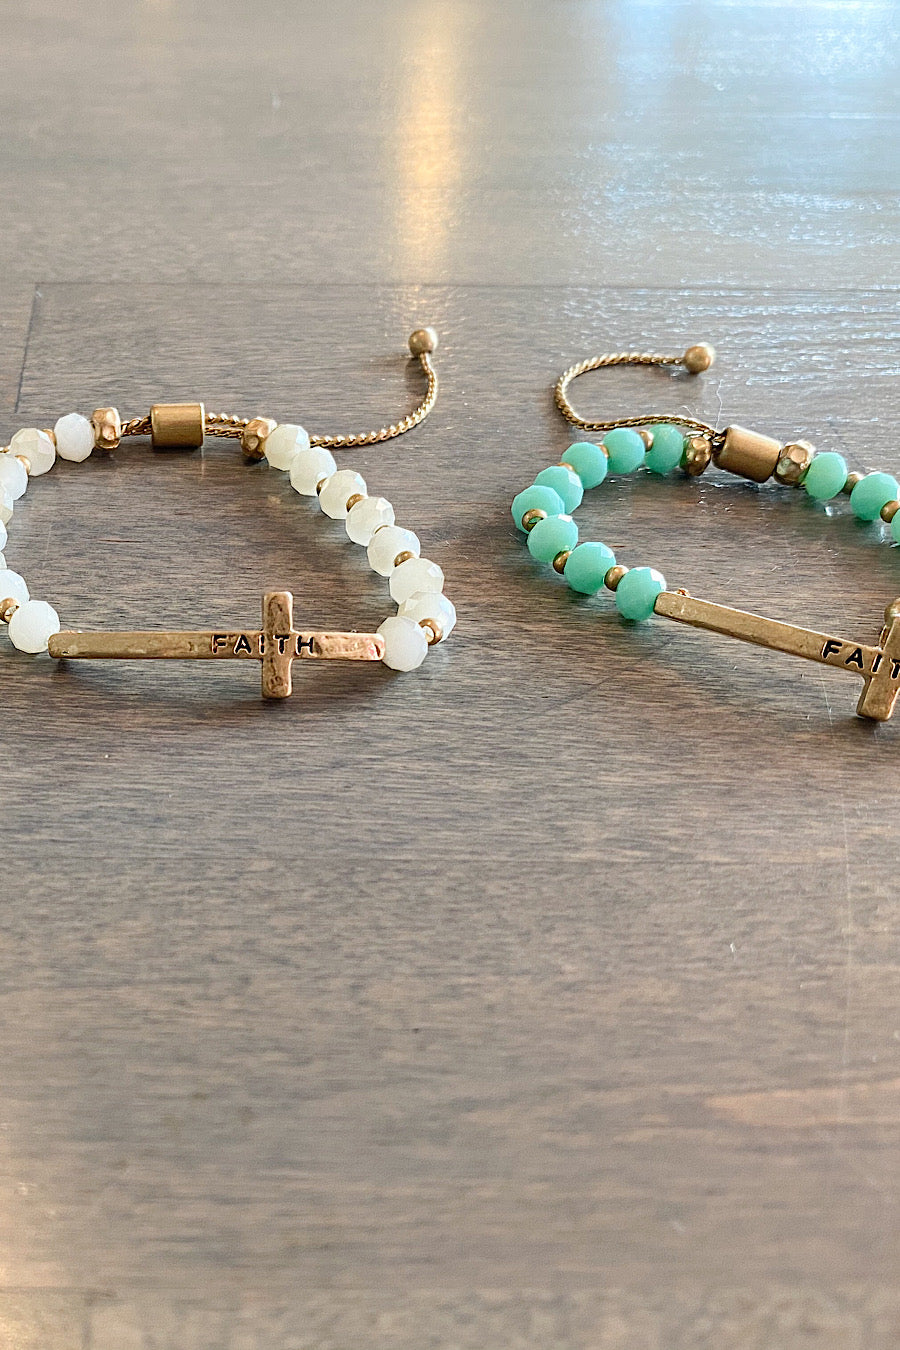 Beaded Cross Bracelets in Turq, Tan, Ivory